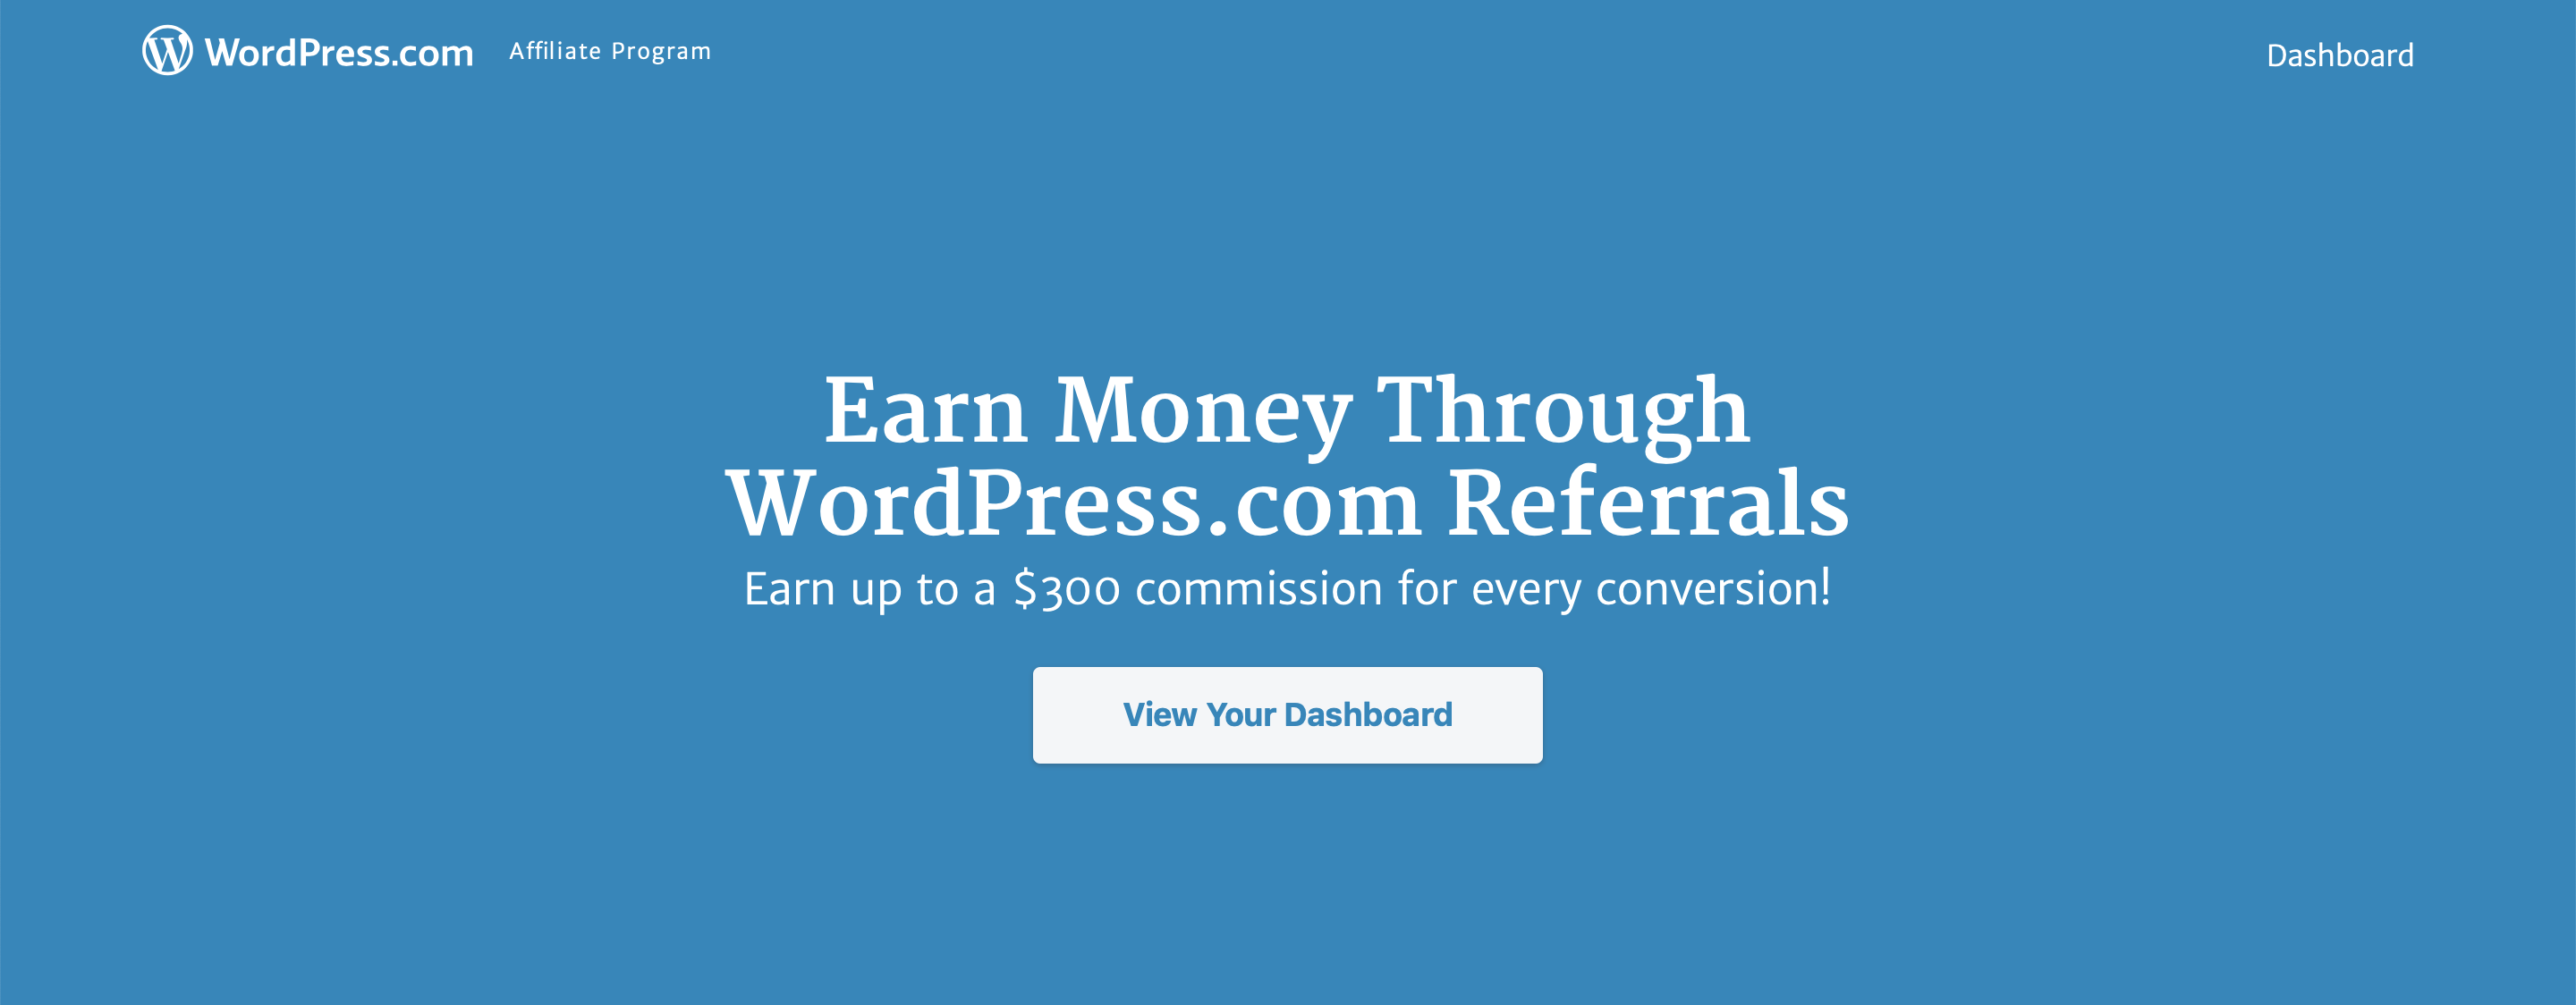 wordpress.com-affiliate-program